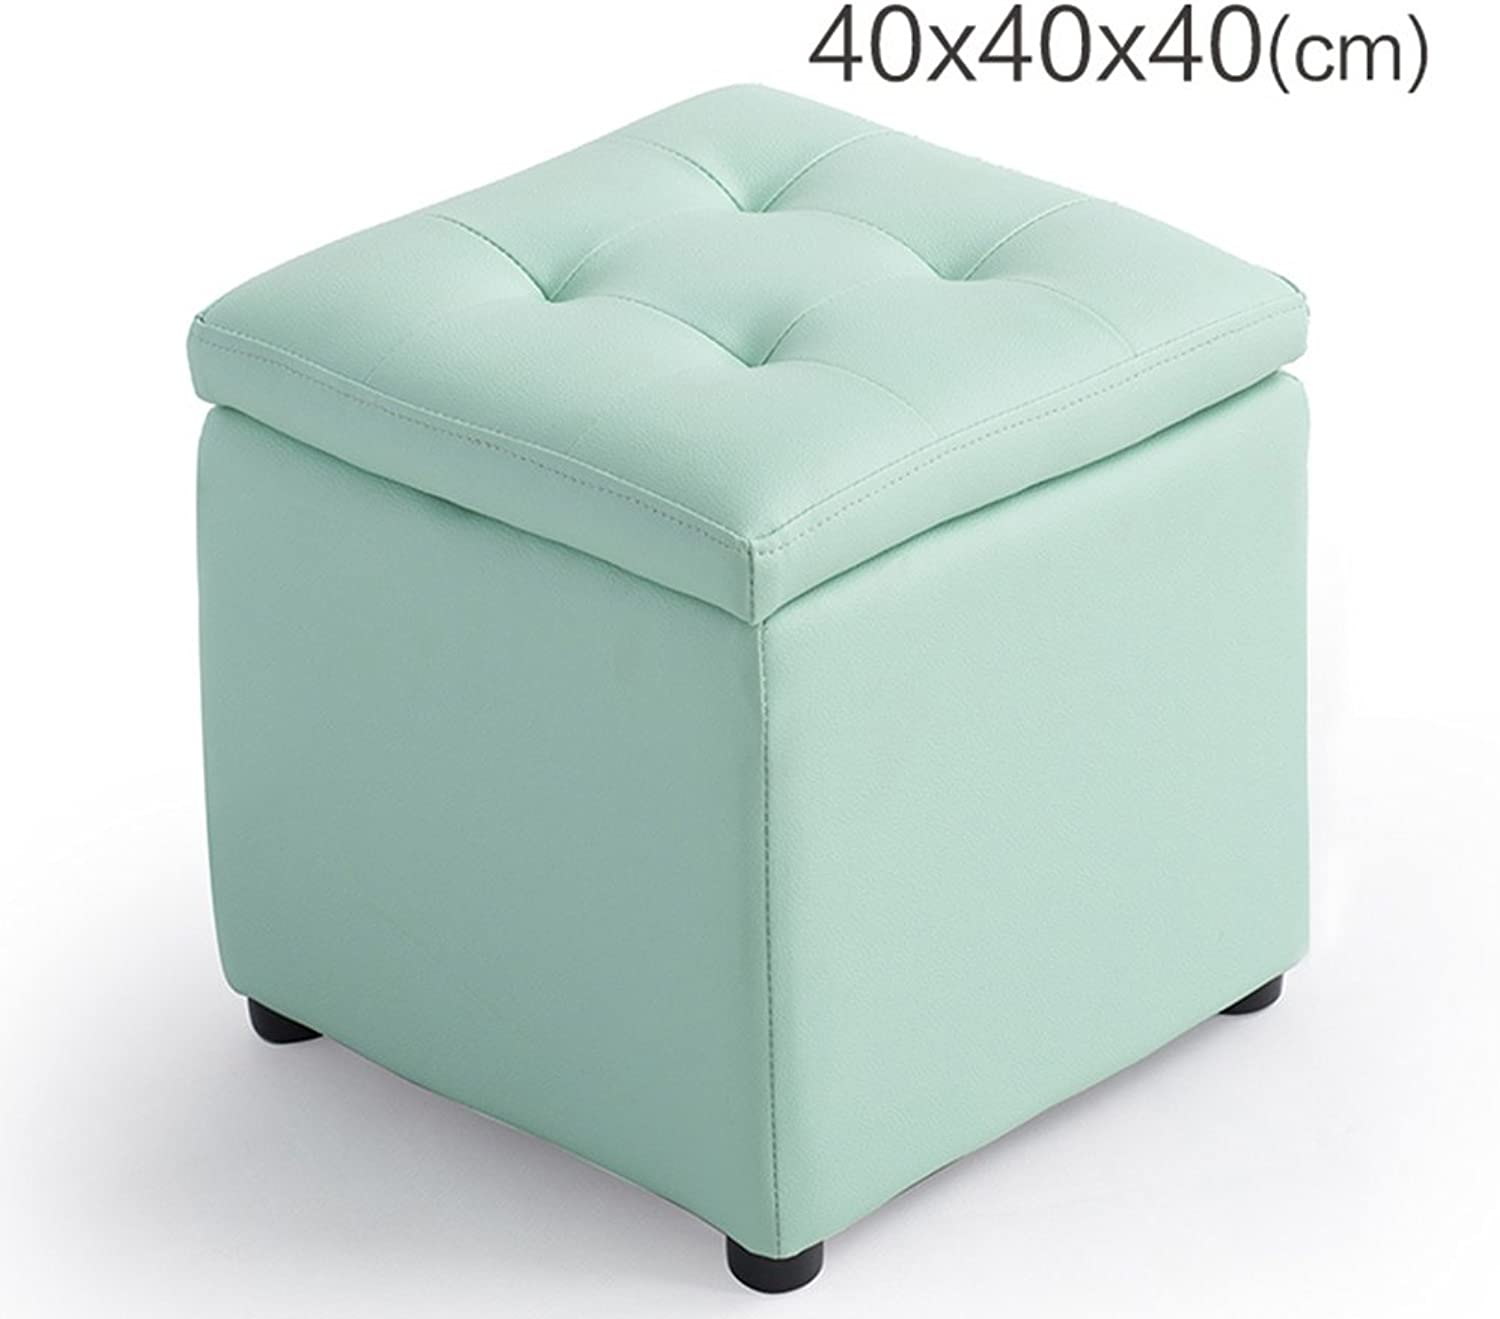 Stool Storage Stool Change shoes Bench Leather Stool Sofa Stool Storage Stool Dressing Stool Low Stool shoes Stool Chairs & Seats (color   bluee, Size   40  40  40cm)